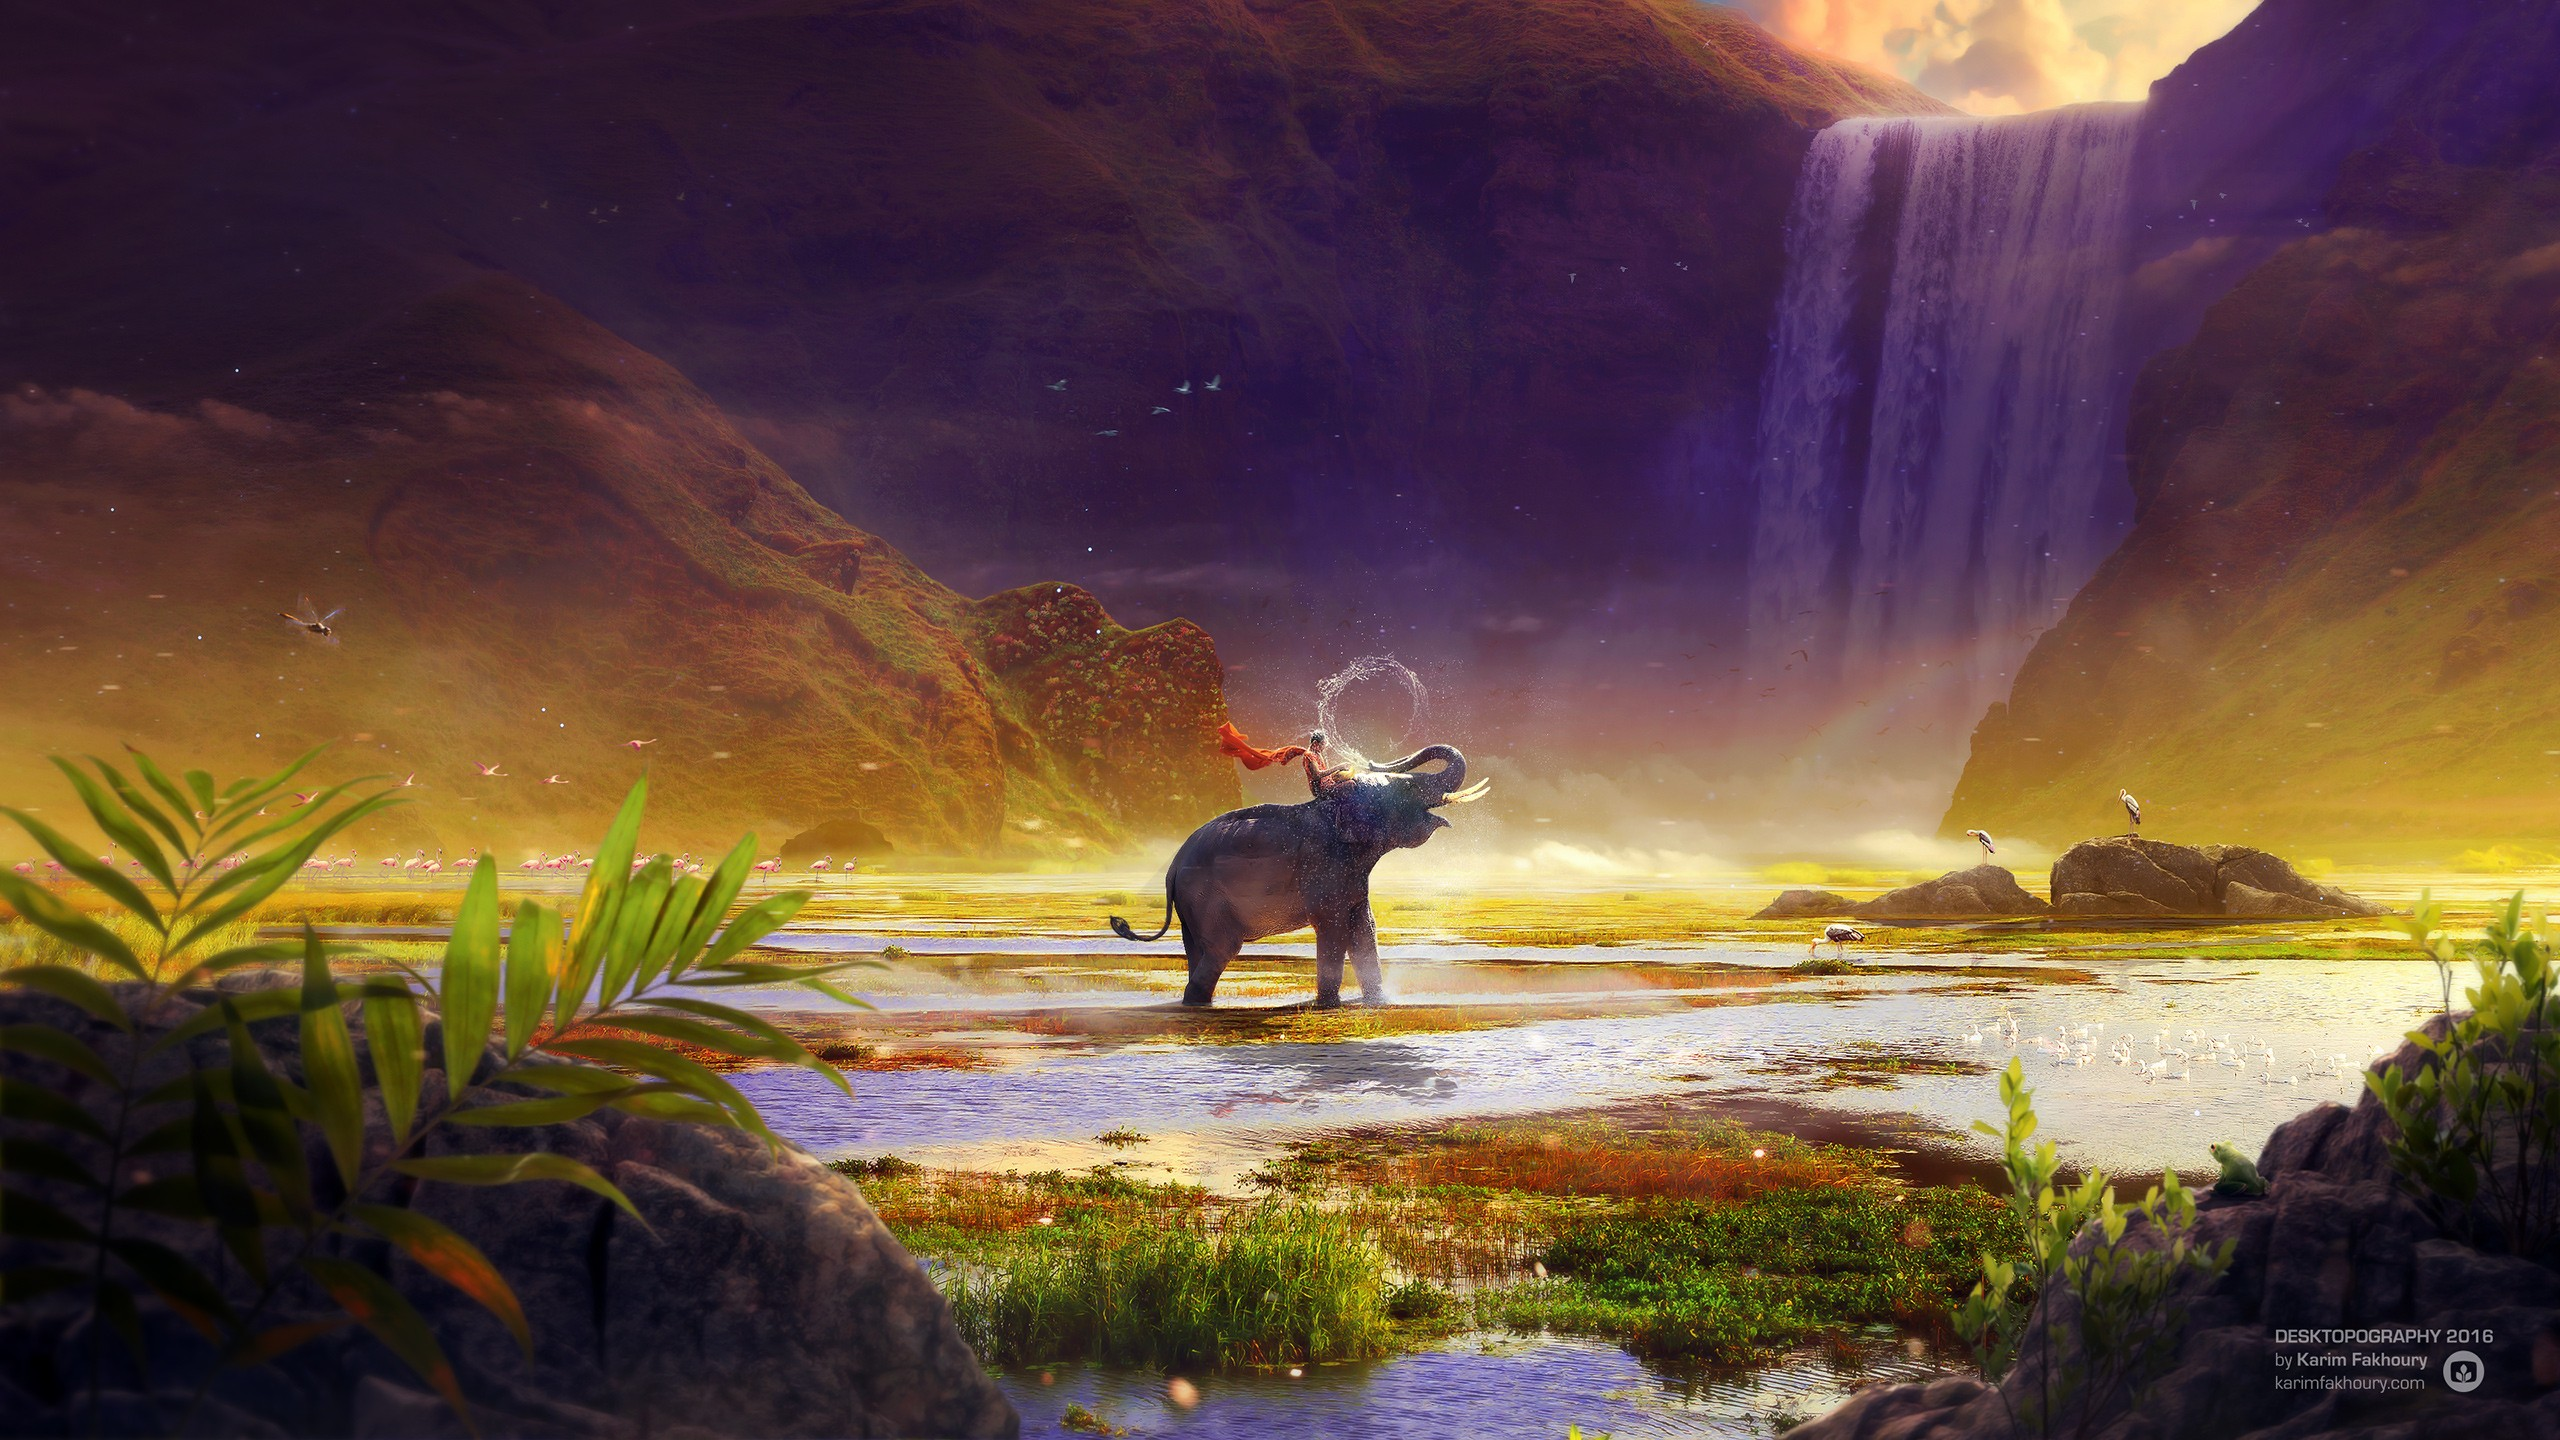 Download Wallpaper Cute Cat Mysterious Shambhala Wallpapers Hd Wallpapers Id 19457